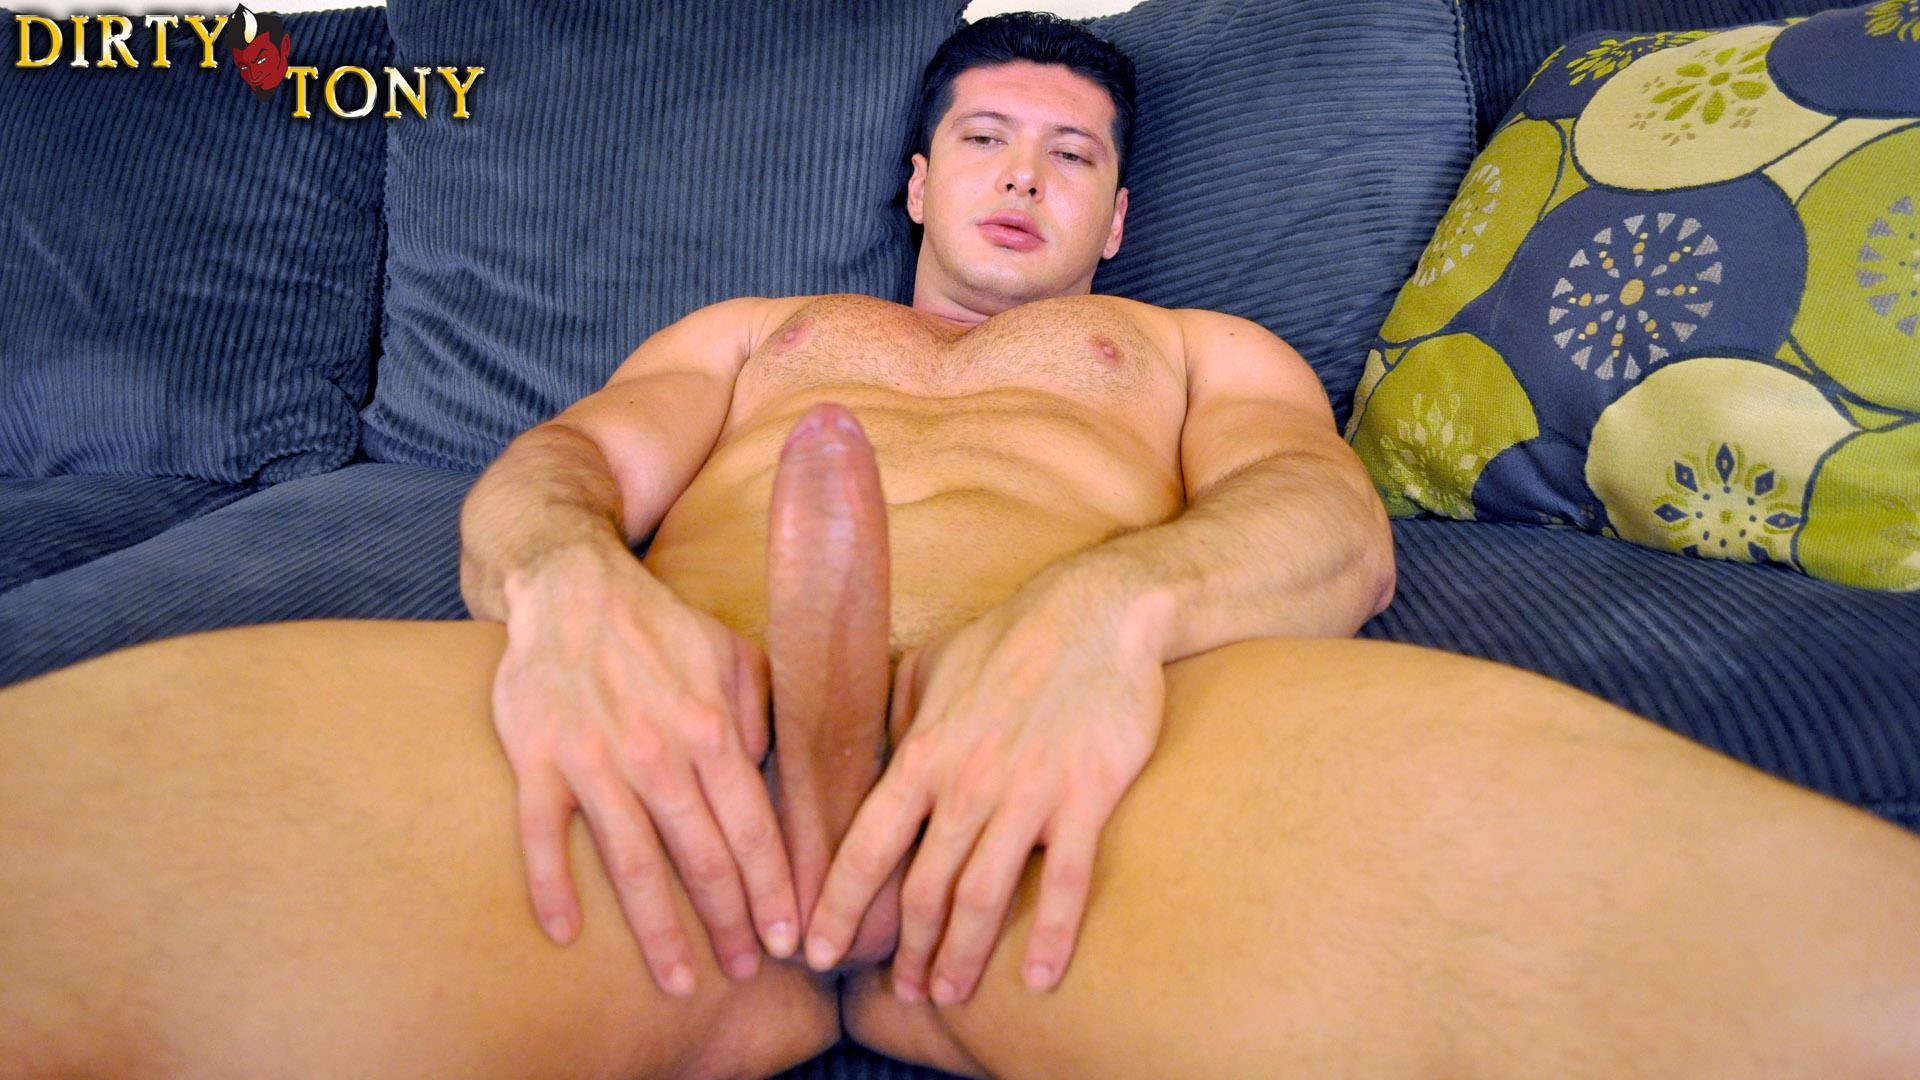 Dirty Tony LIAM SANTIAGO Straight Muscle Latino Jerking Off Big Uncut Cock Amateur Gay Porn 04 Straight Hairy Muscle Latino Auditions For Gay Porn With A Big Uncut Cock